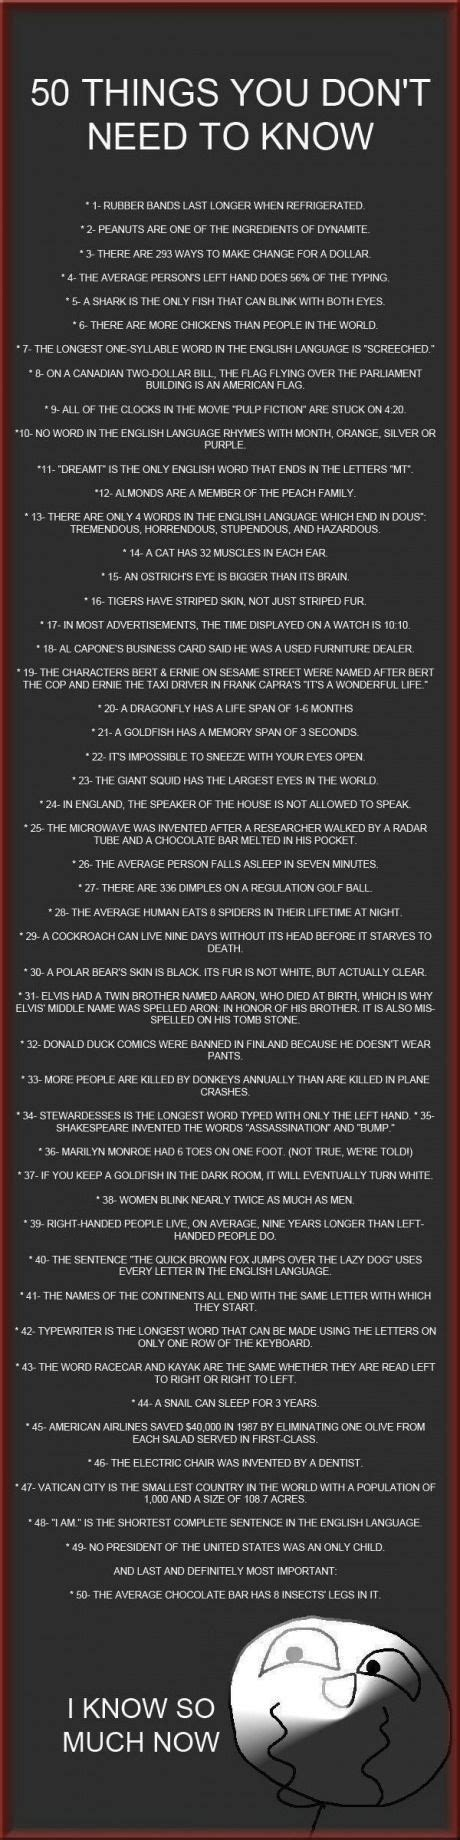 50 wacky things humans do amazing facts about the human wacky series books 50 things you don t need to funnies